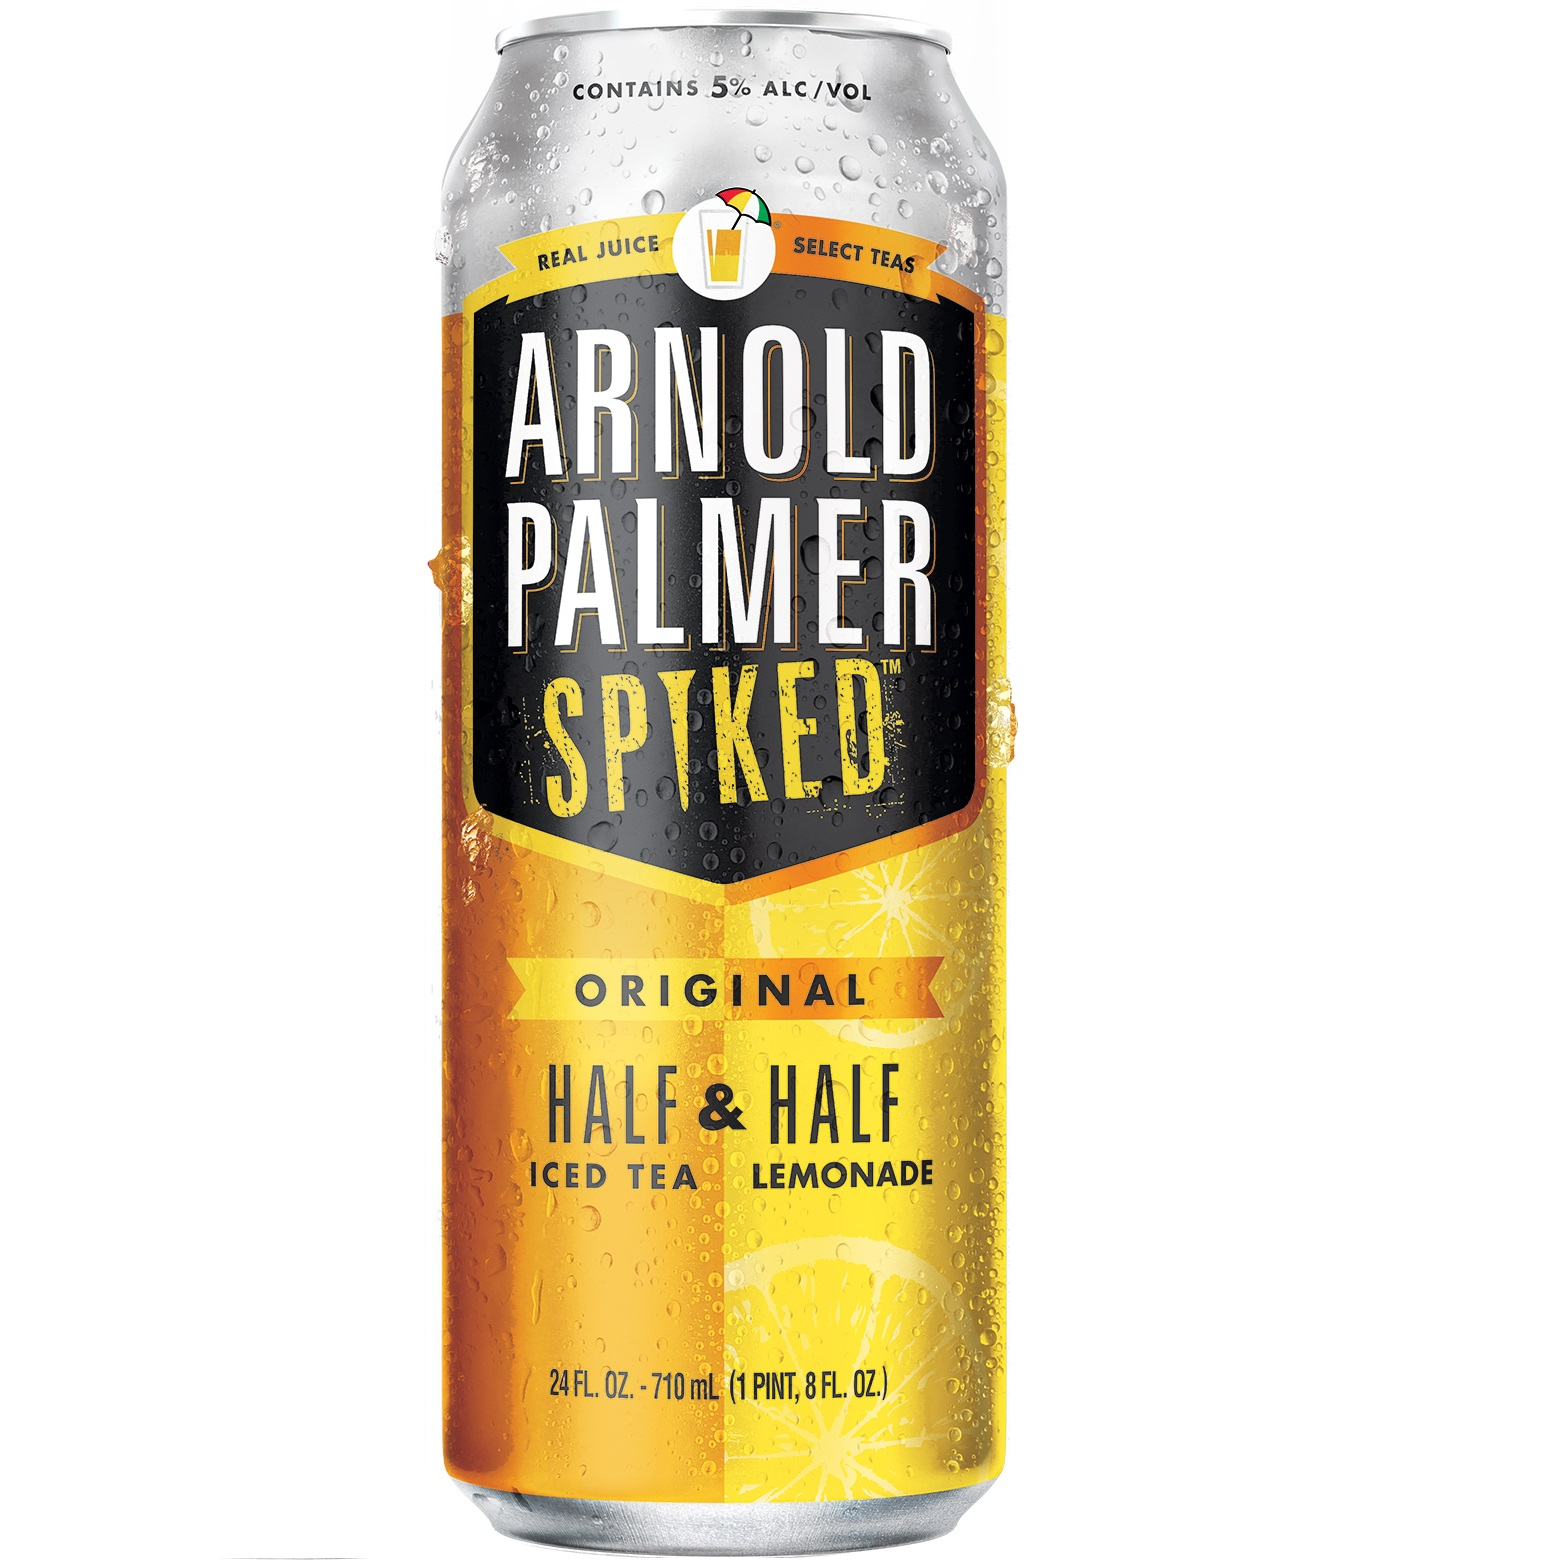 Arnold Palmer Spiked 24oz can